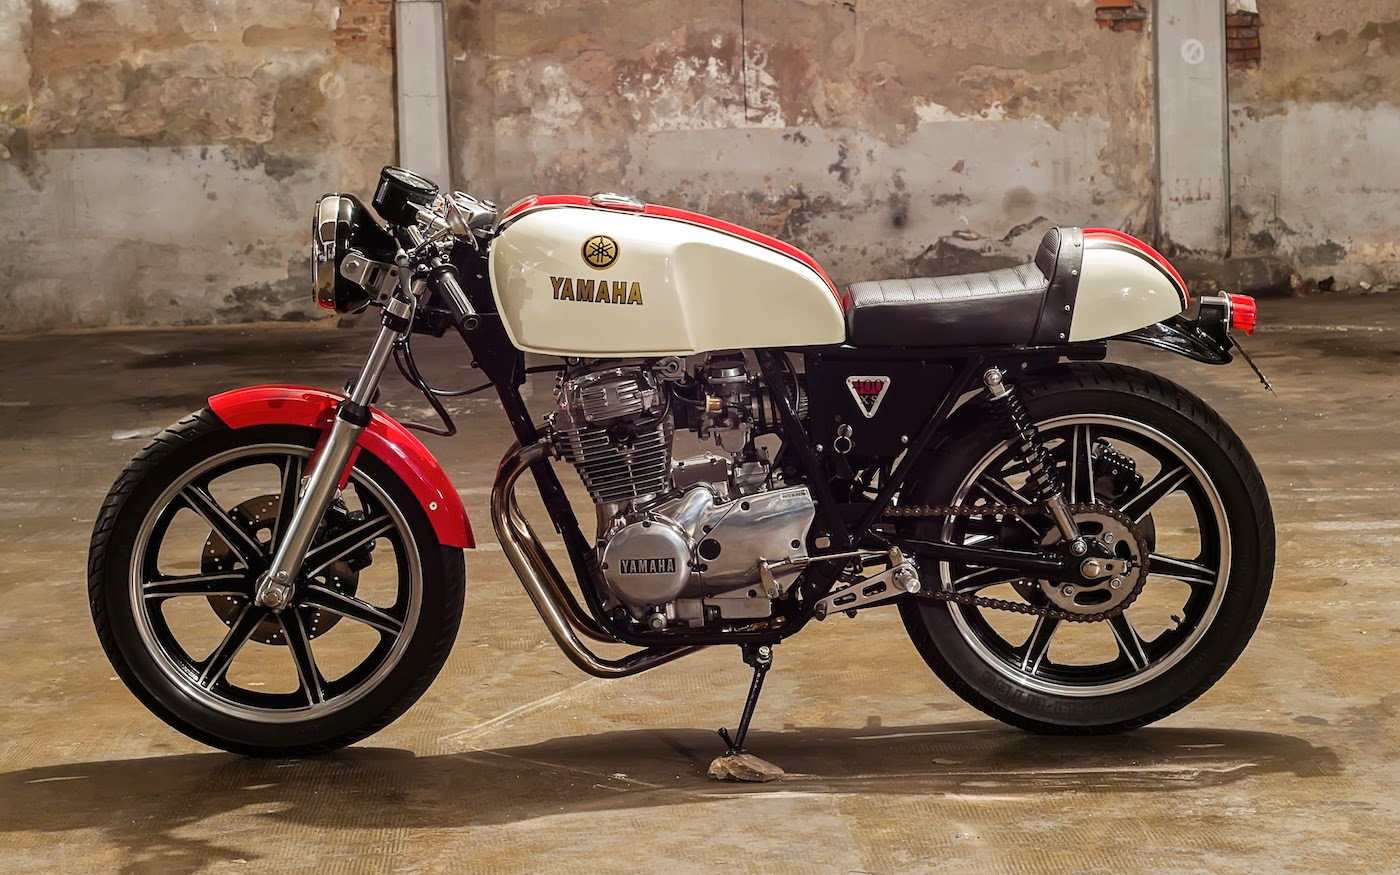 1978 yamaha xs400 cafe racer - grease n gas